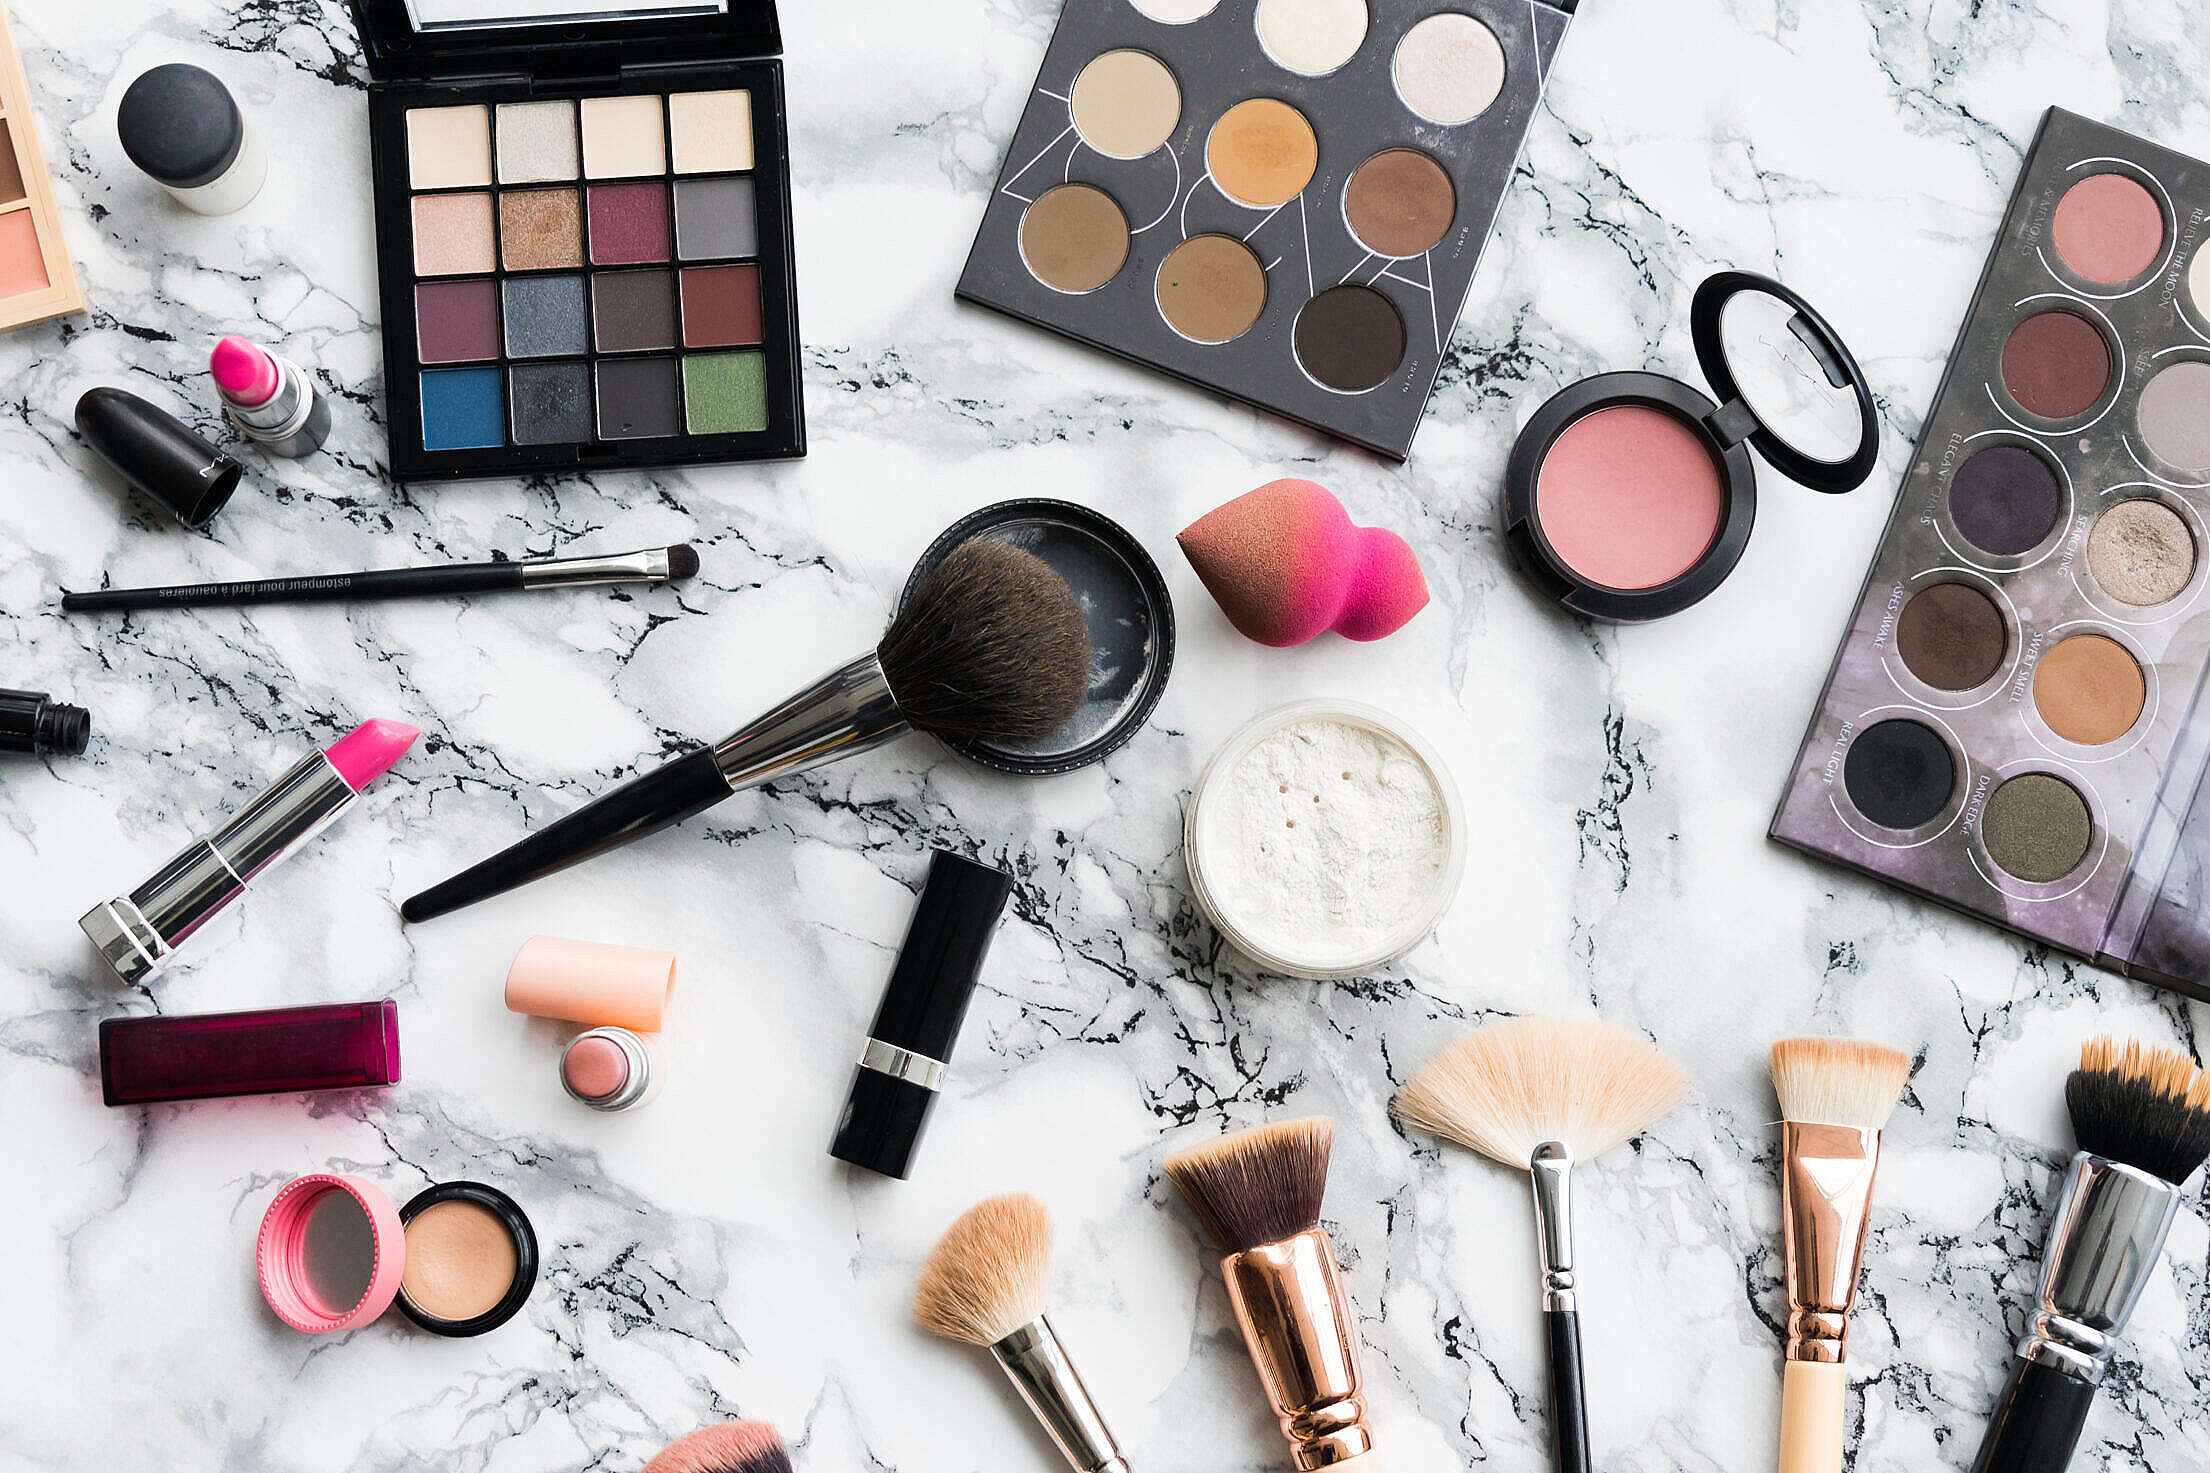 Woman Beauty Makeup Set on White Marble Background Free Stock Photo